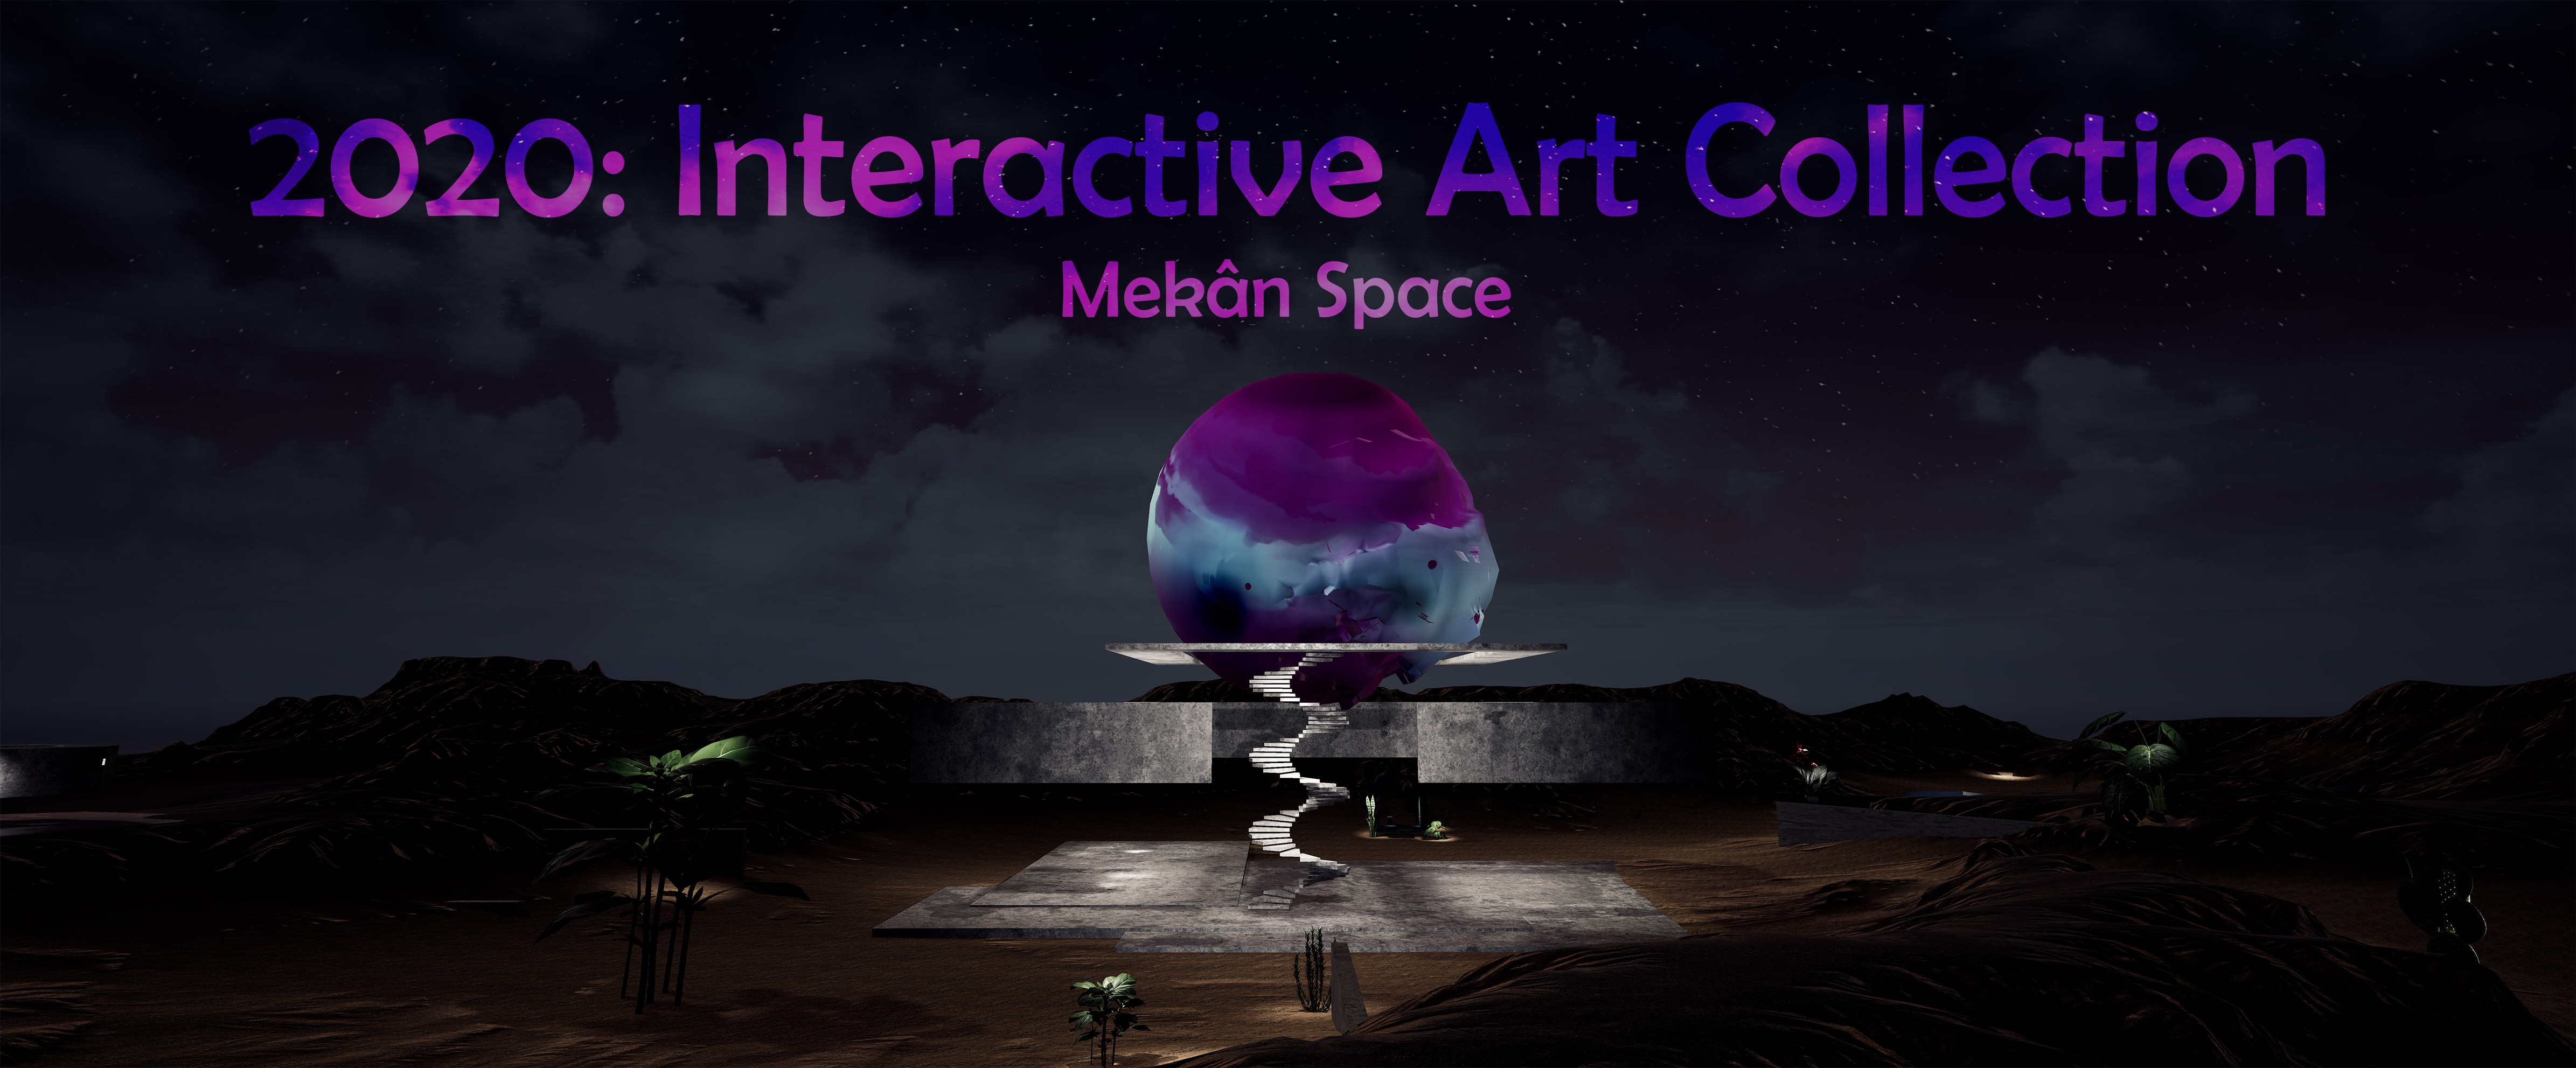 2020: Interactive Art Collection